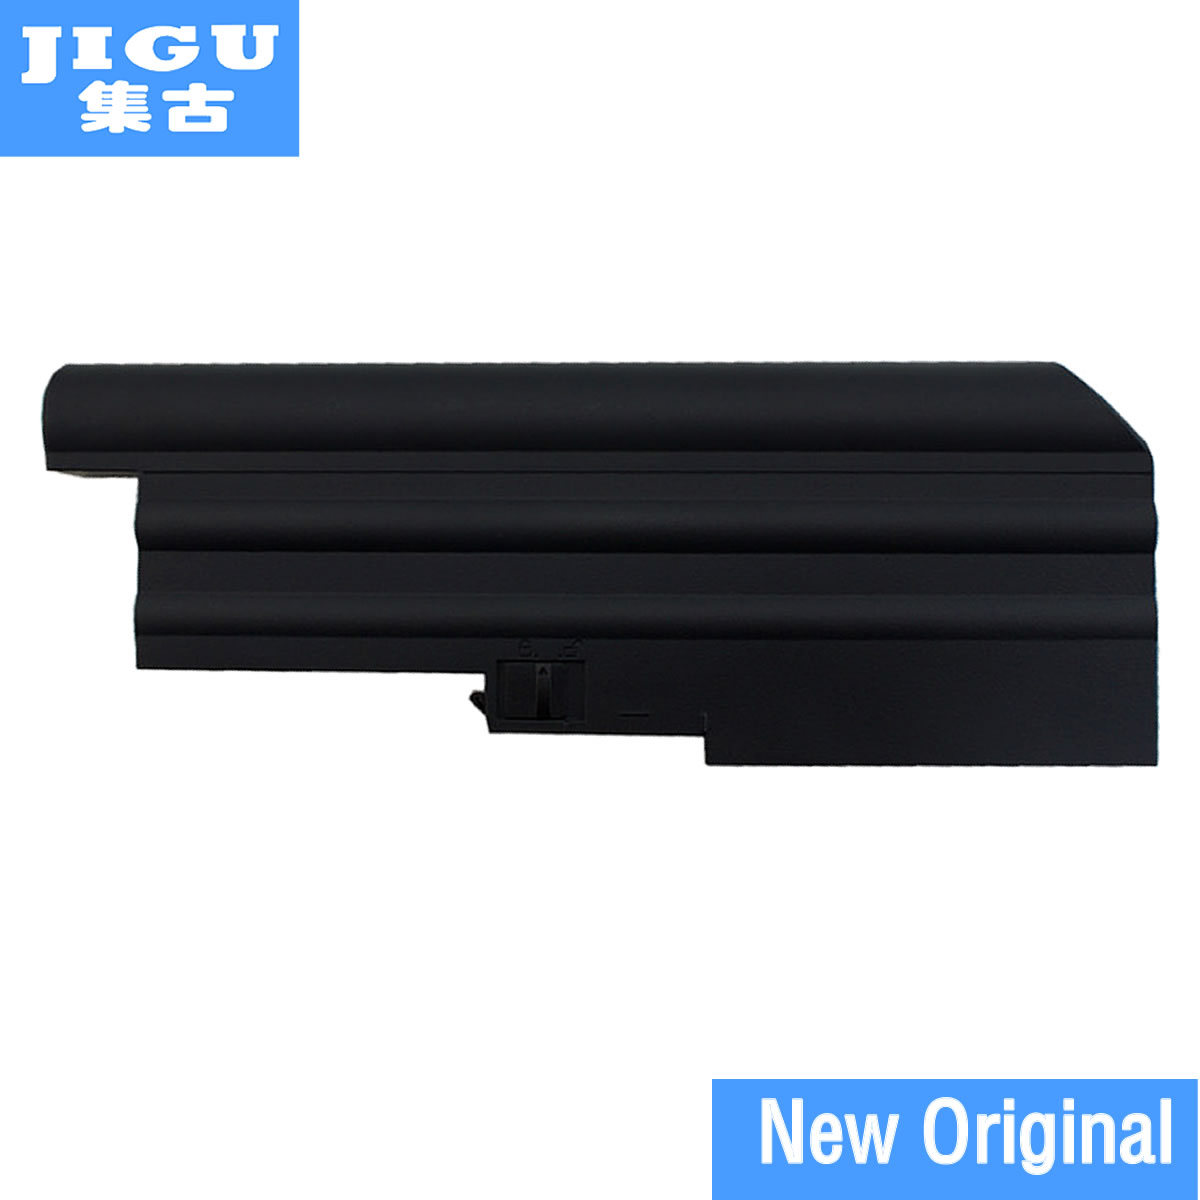 JIGU 7800mAh Original Laptop battery for IBM Lenovo R60 R60e R61 R61e R61i T60 T60p T61 T61p R500 T500 W500 SL400 SL500 SL300 5200mah 6 cells replacement laptop battery for ibm thinkpad r60 r60e t60 t60p lenovo thinkpad r500 t500 w500 laptop batteria